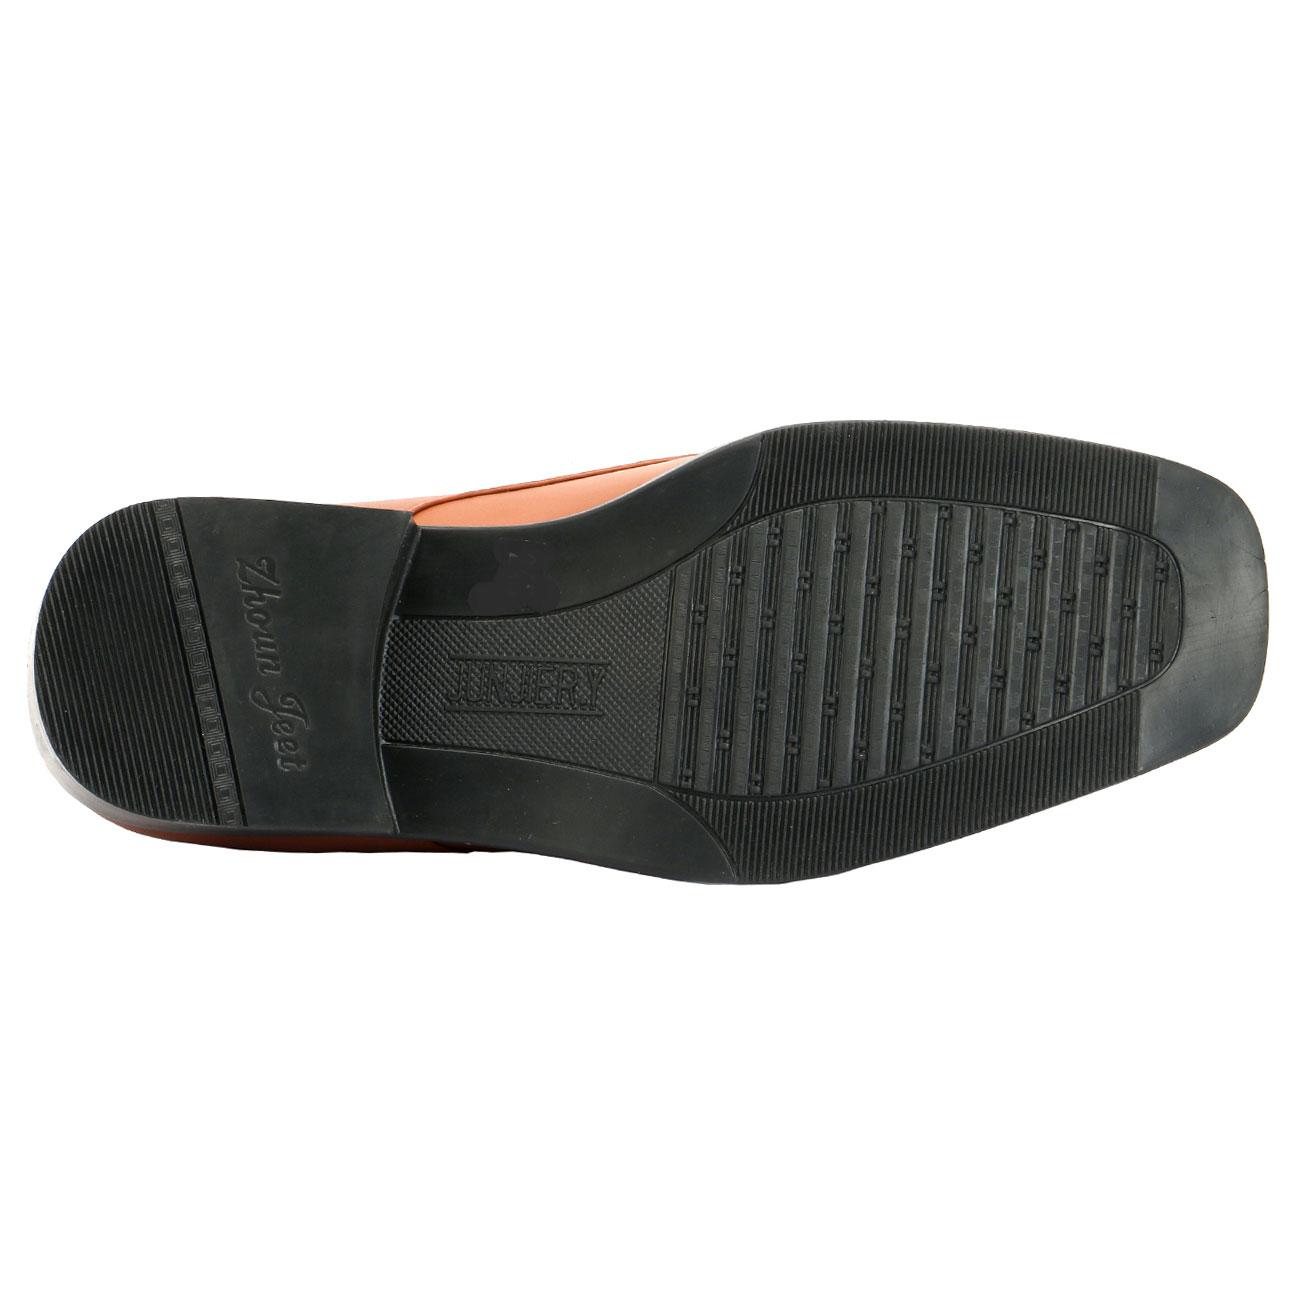 Guys shoes for increasing height-5